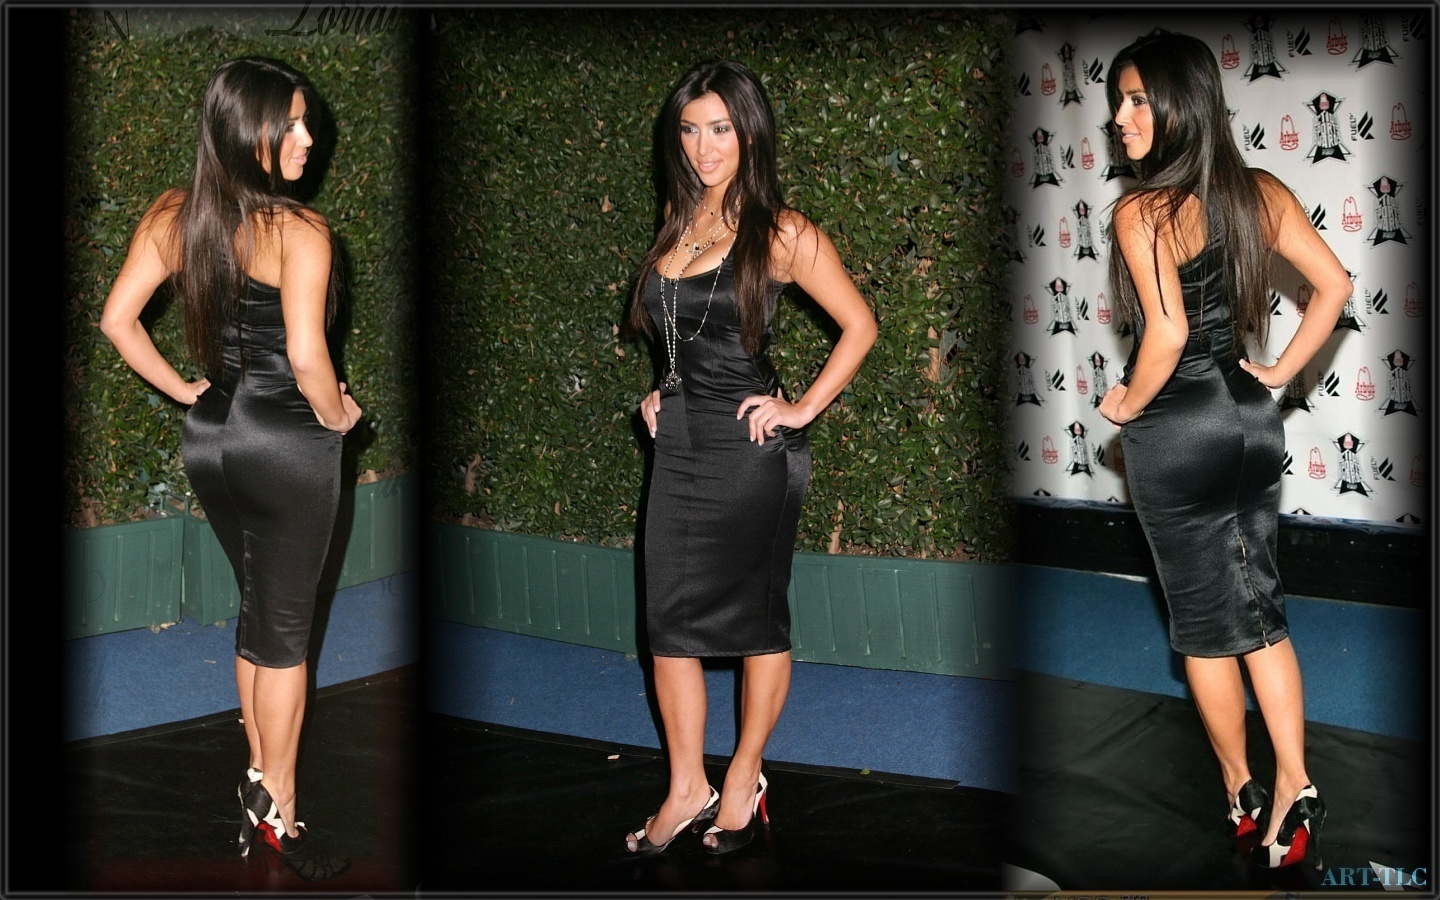 http://images1.fanpop.com/images/photos/2000000/Kim-wallpapers-kim-kardashian-2014645-1440-900.jpg